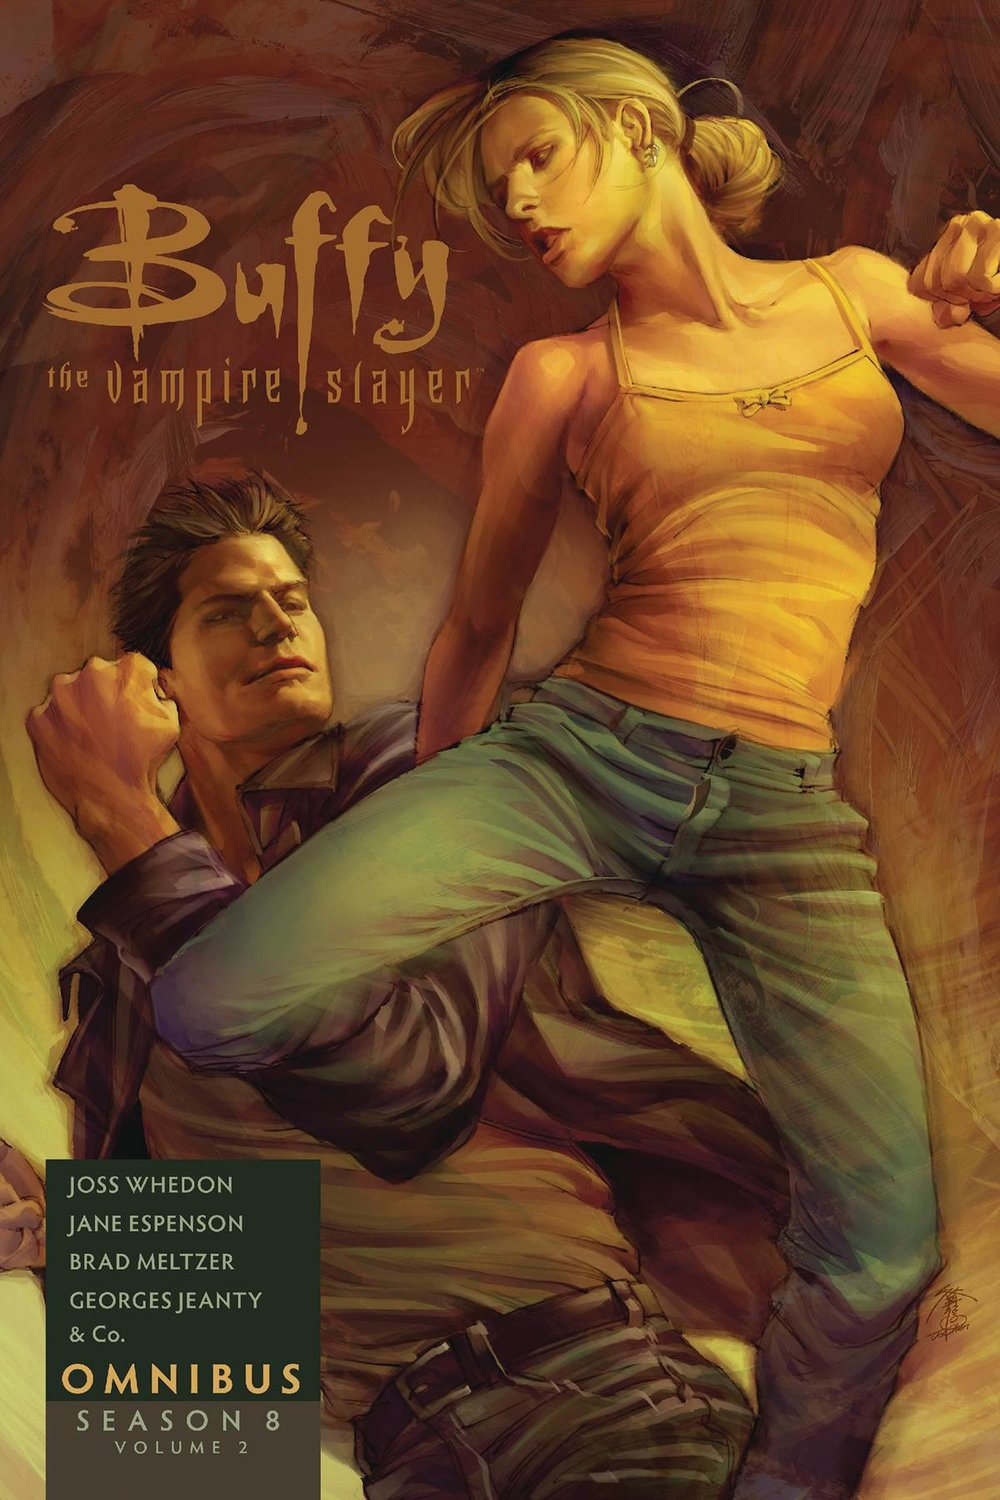 BUFFY THE VAMPIRE SLAYER OMNIBUS SEASON 8 TP 2.jpg